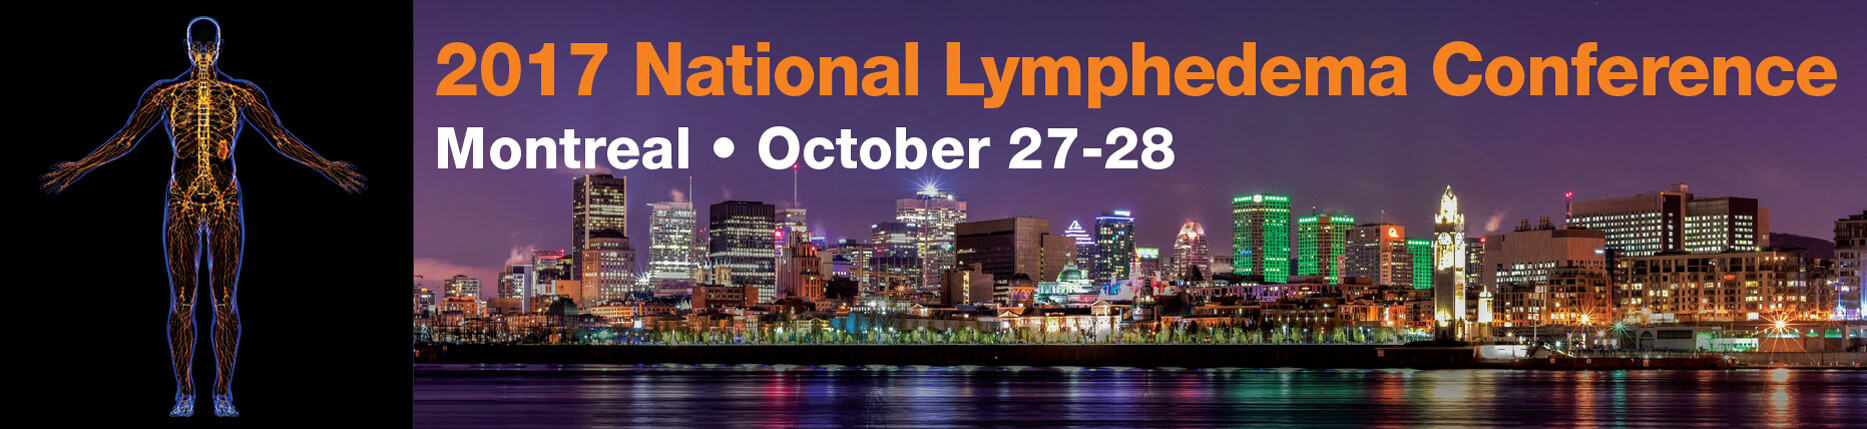 2017 National Lymphedema Conference